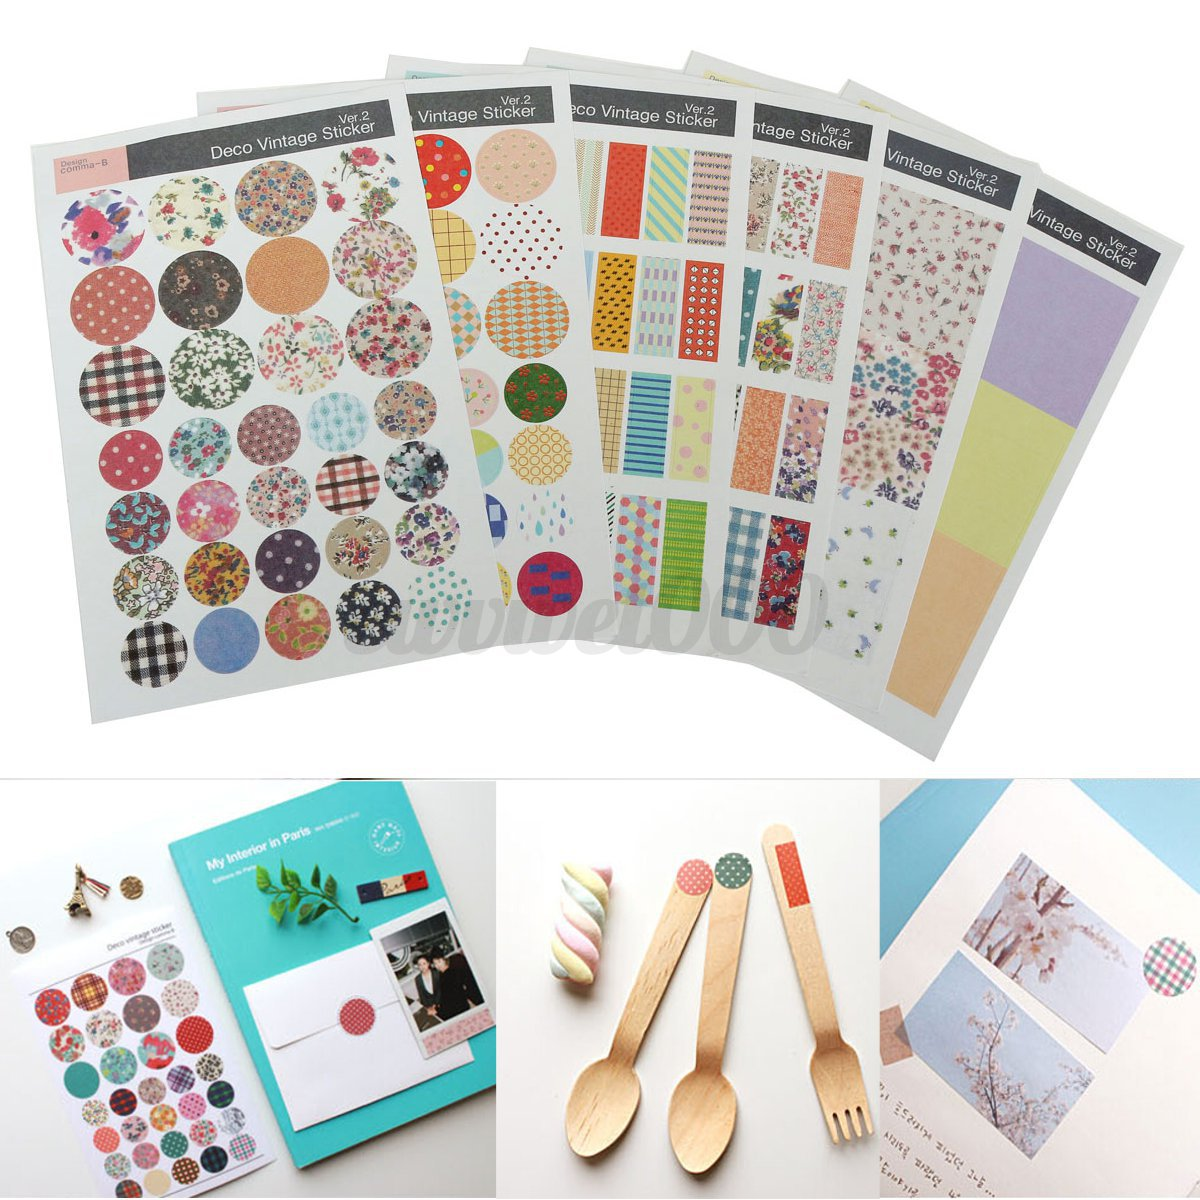 Diy Calendar Diary : Diy album scrapbook calendar diary planner card photo